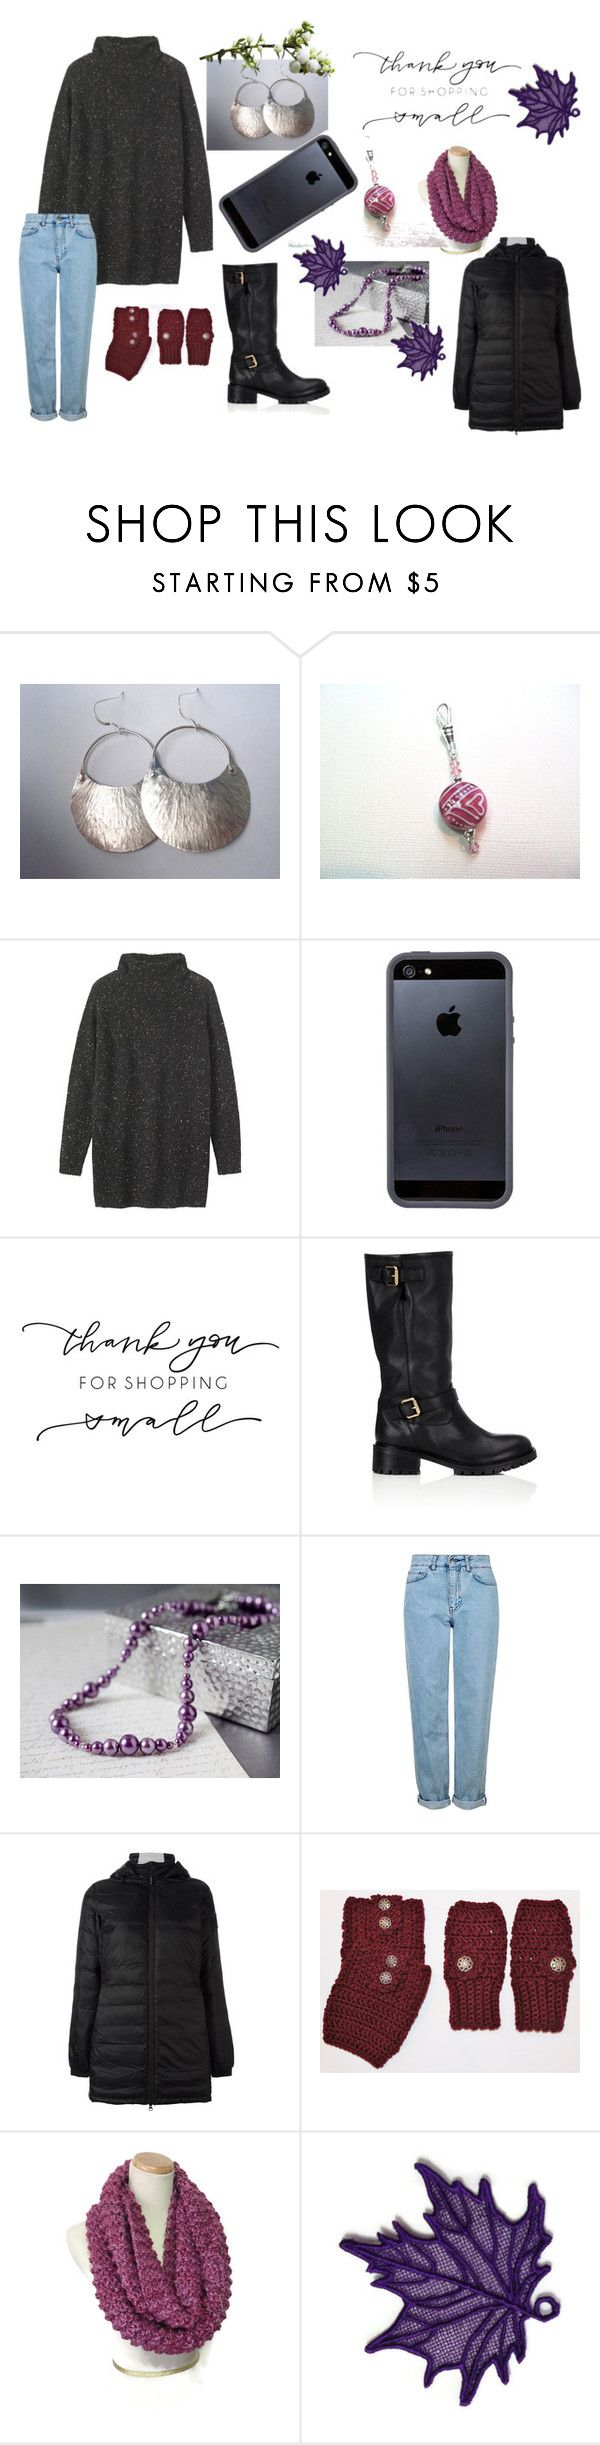 Winter Casual Wear for Her #2 by keepsakedesignbycmm on Polyvore featuring Toast, Canada Goose, Topshop, Fendi and Tavik Swimwear